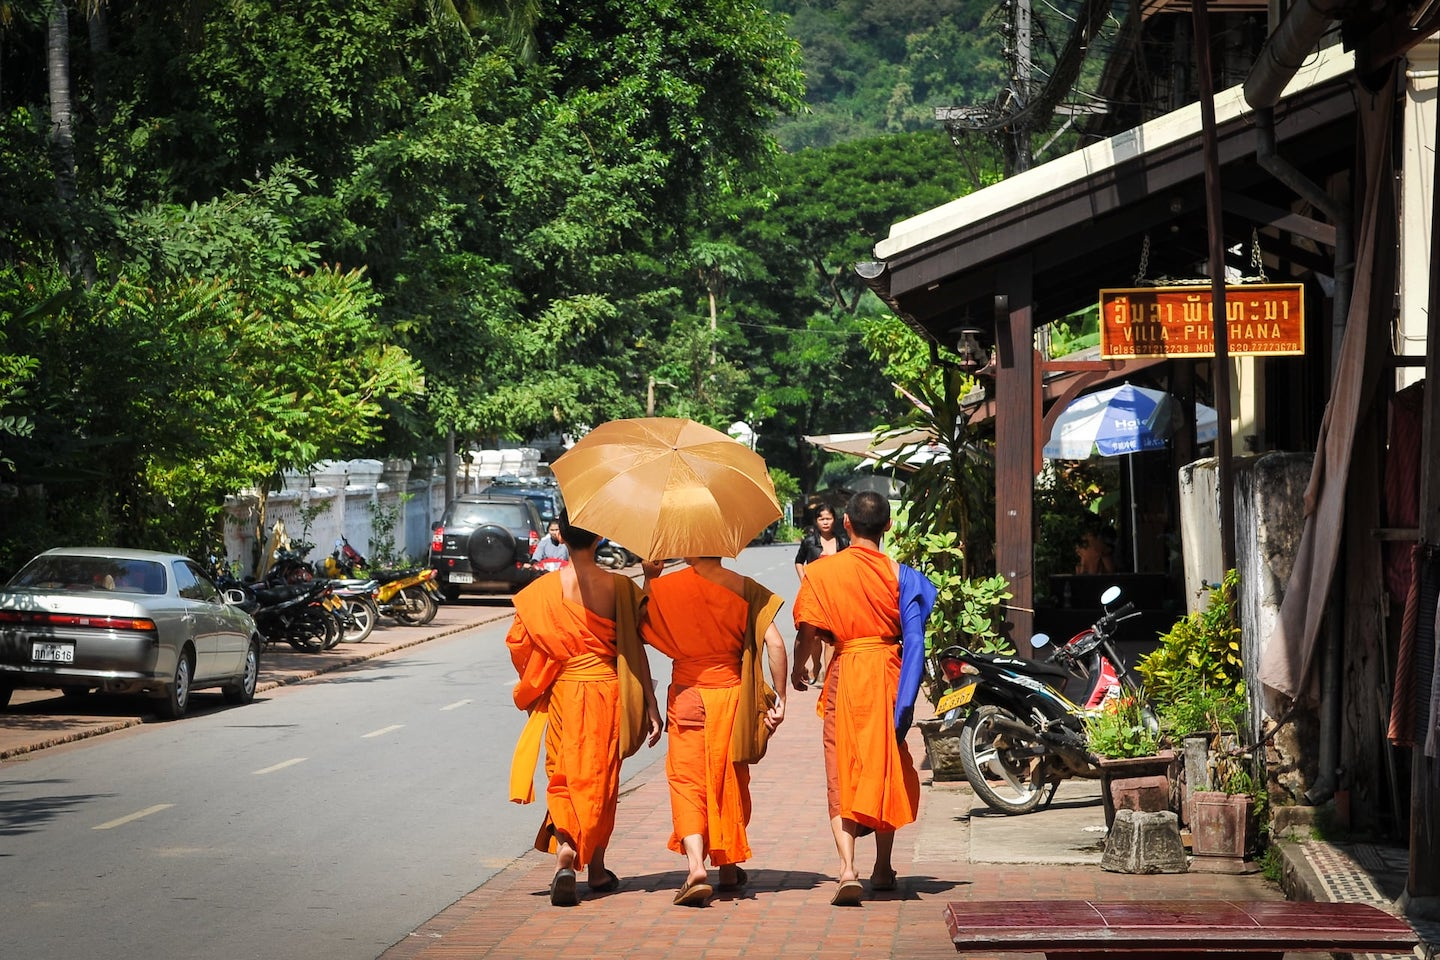 saffron-clad monks walking down road